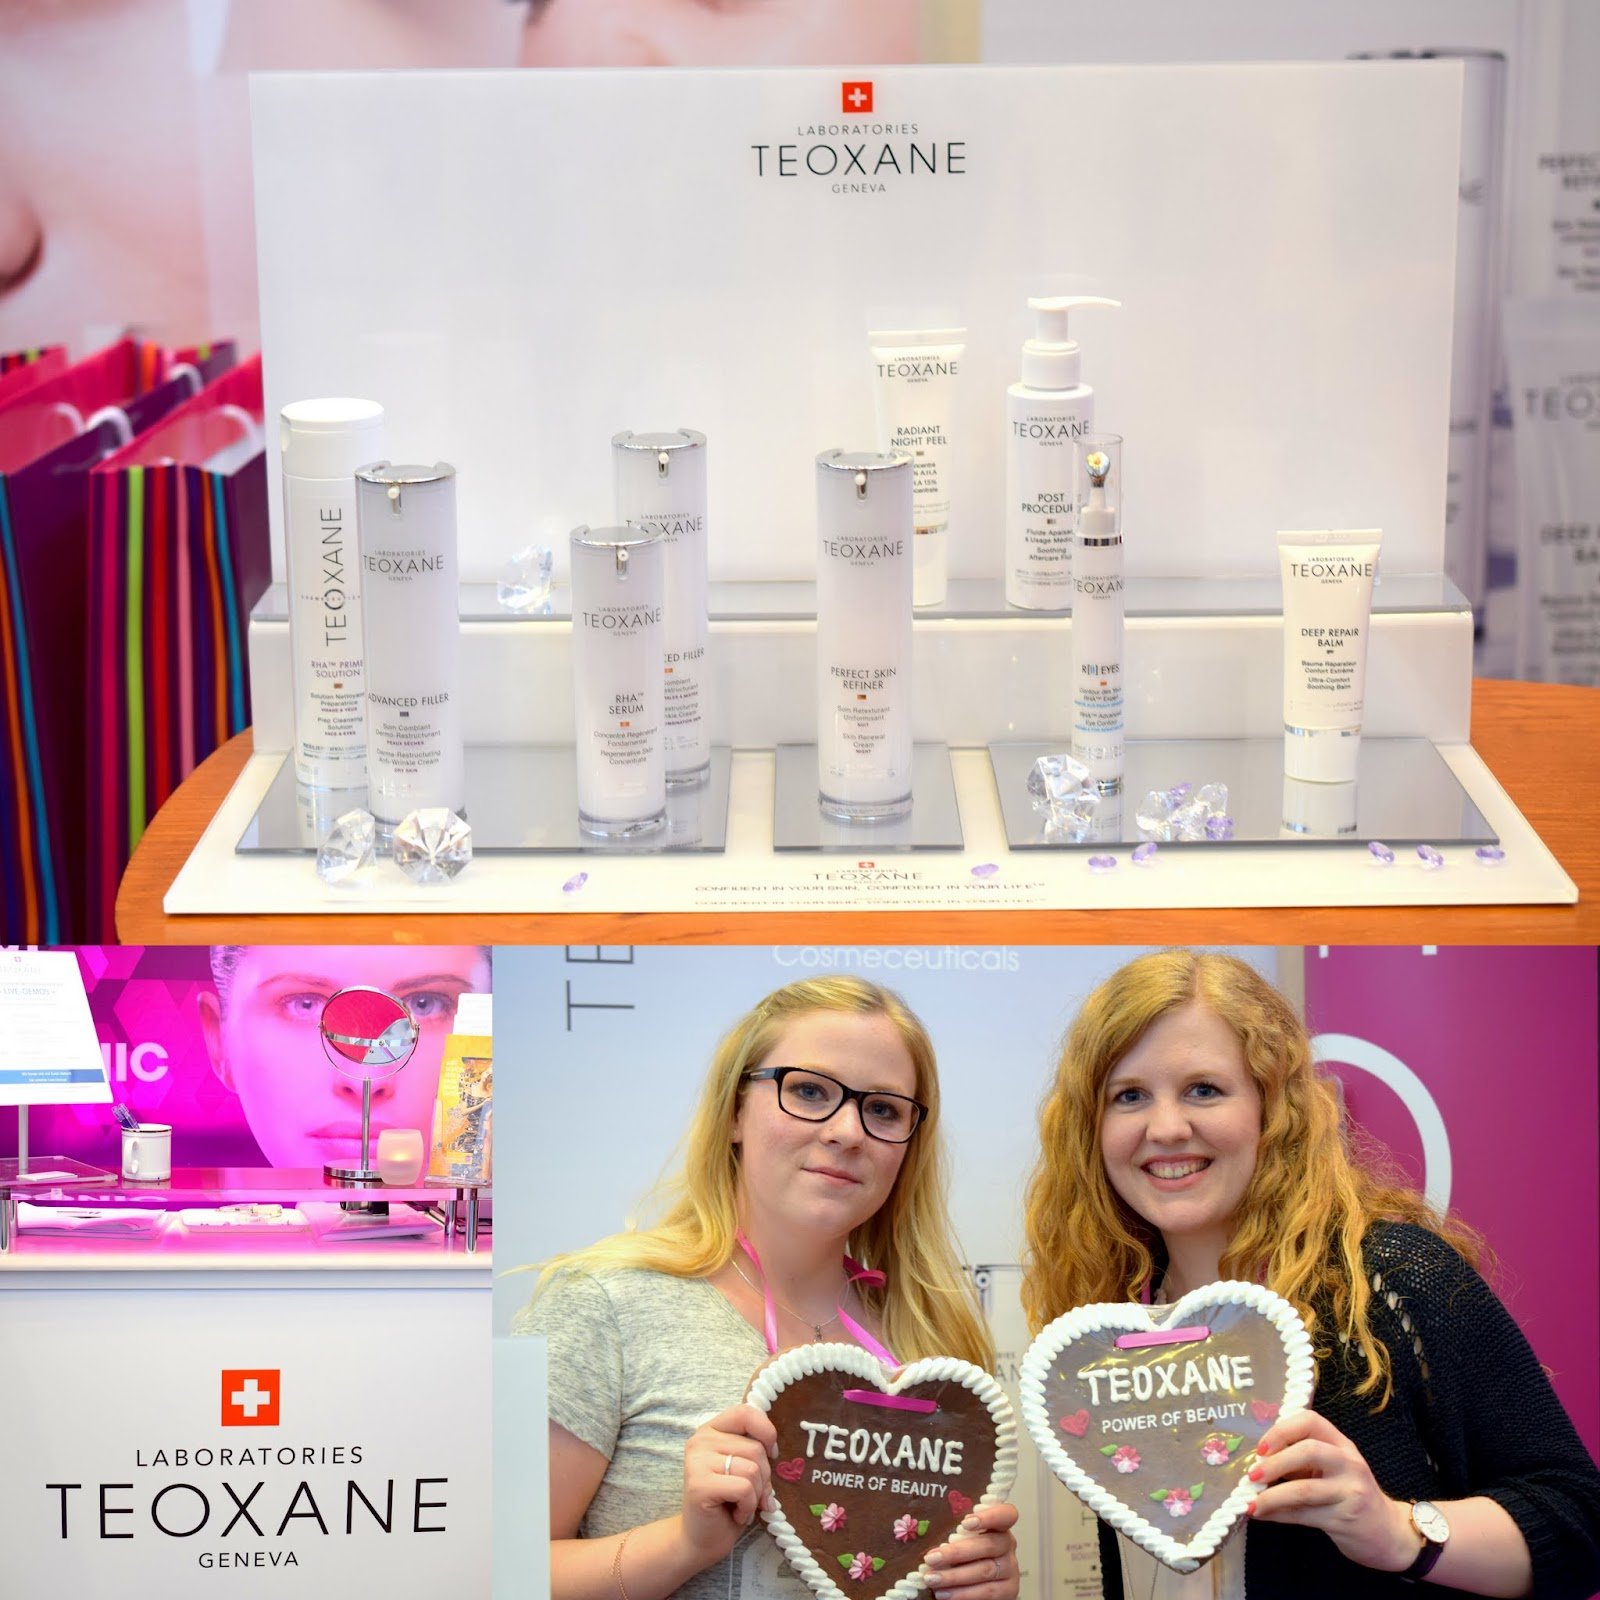 Beautypress Bloggerevent Juni 2015: Teoxane